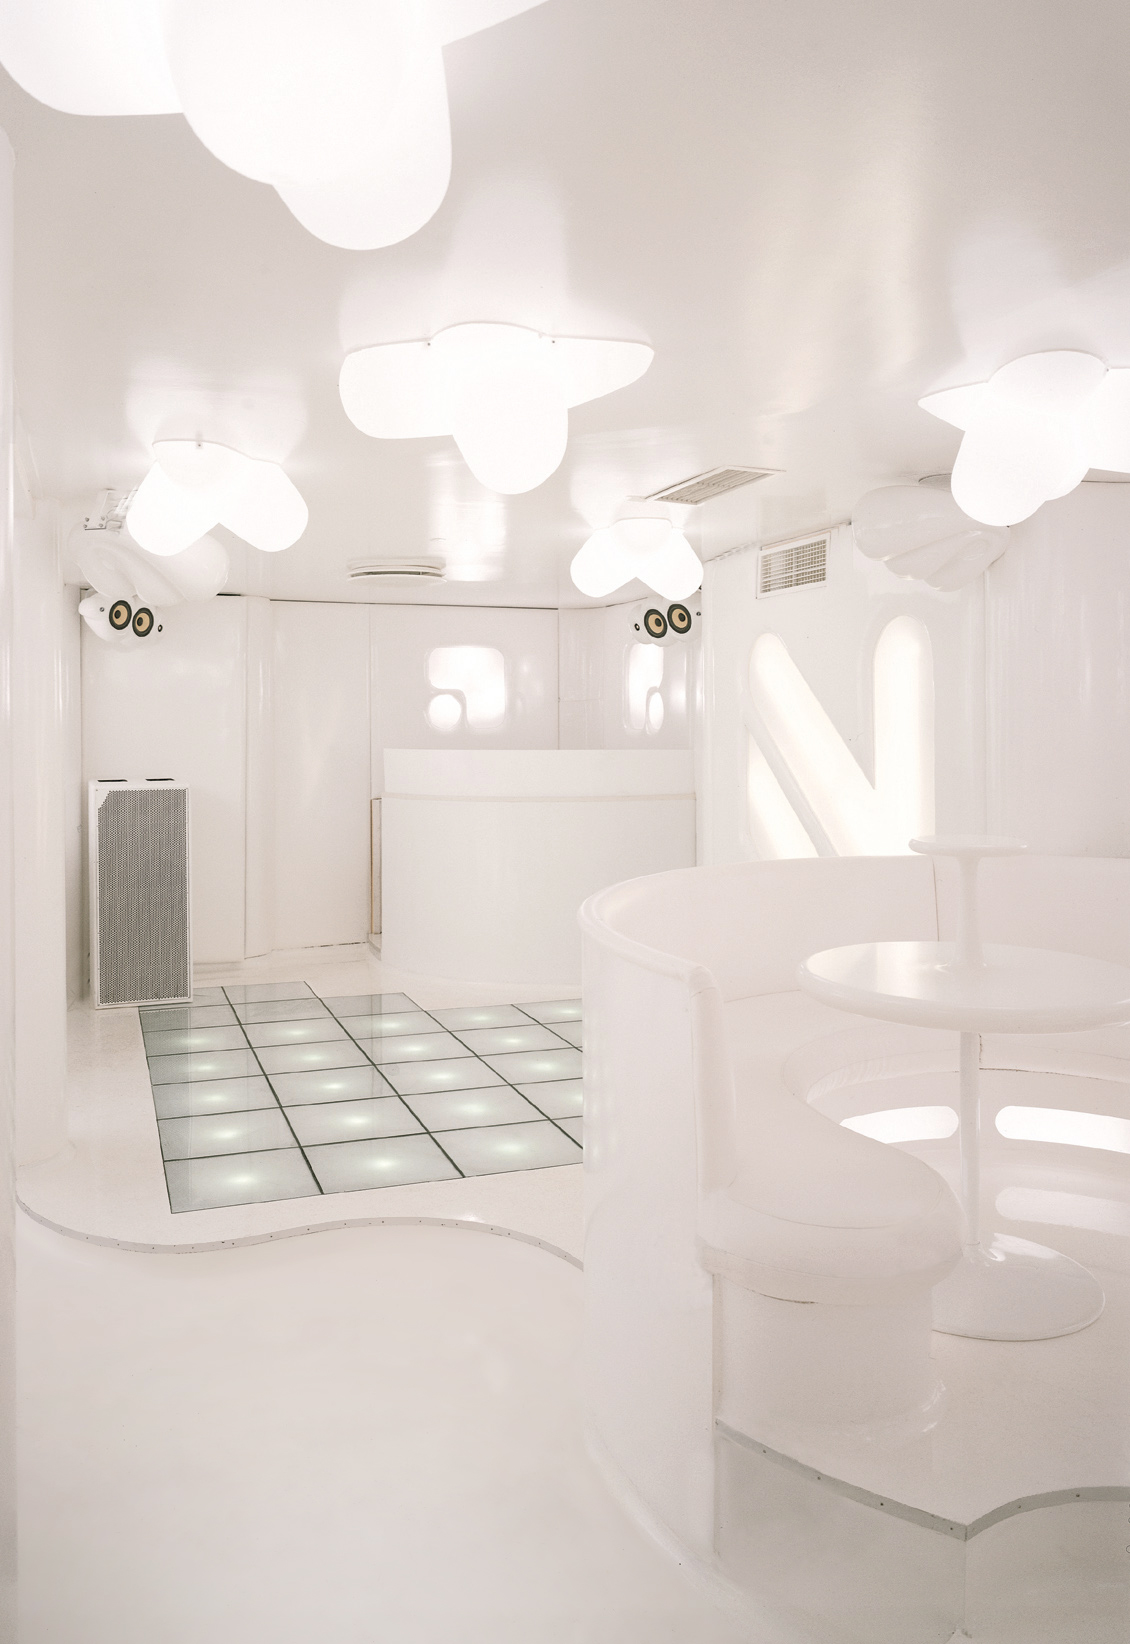 White interior design for NASA Nightclub designed by Johannes Torpe Studios